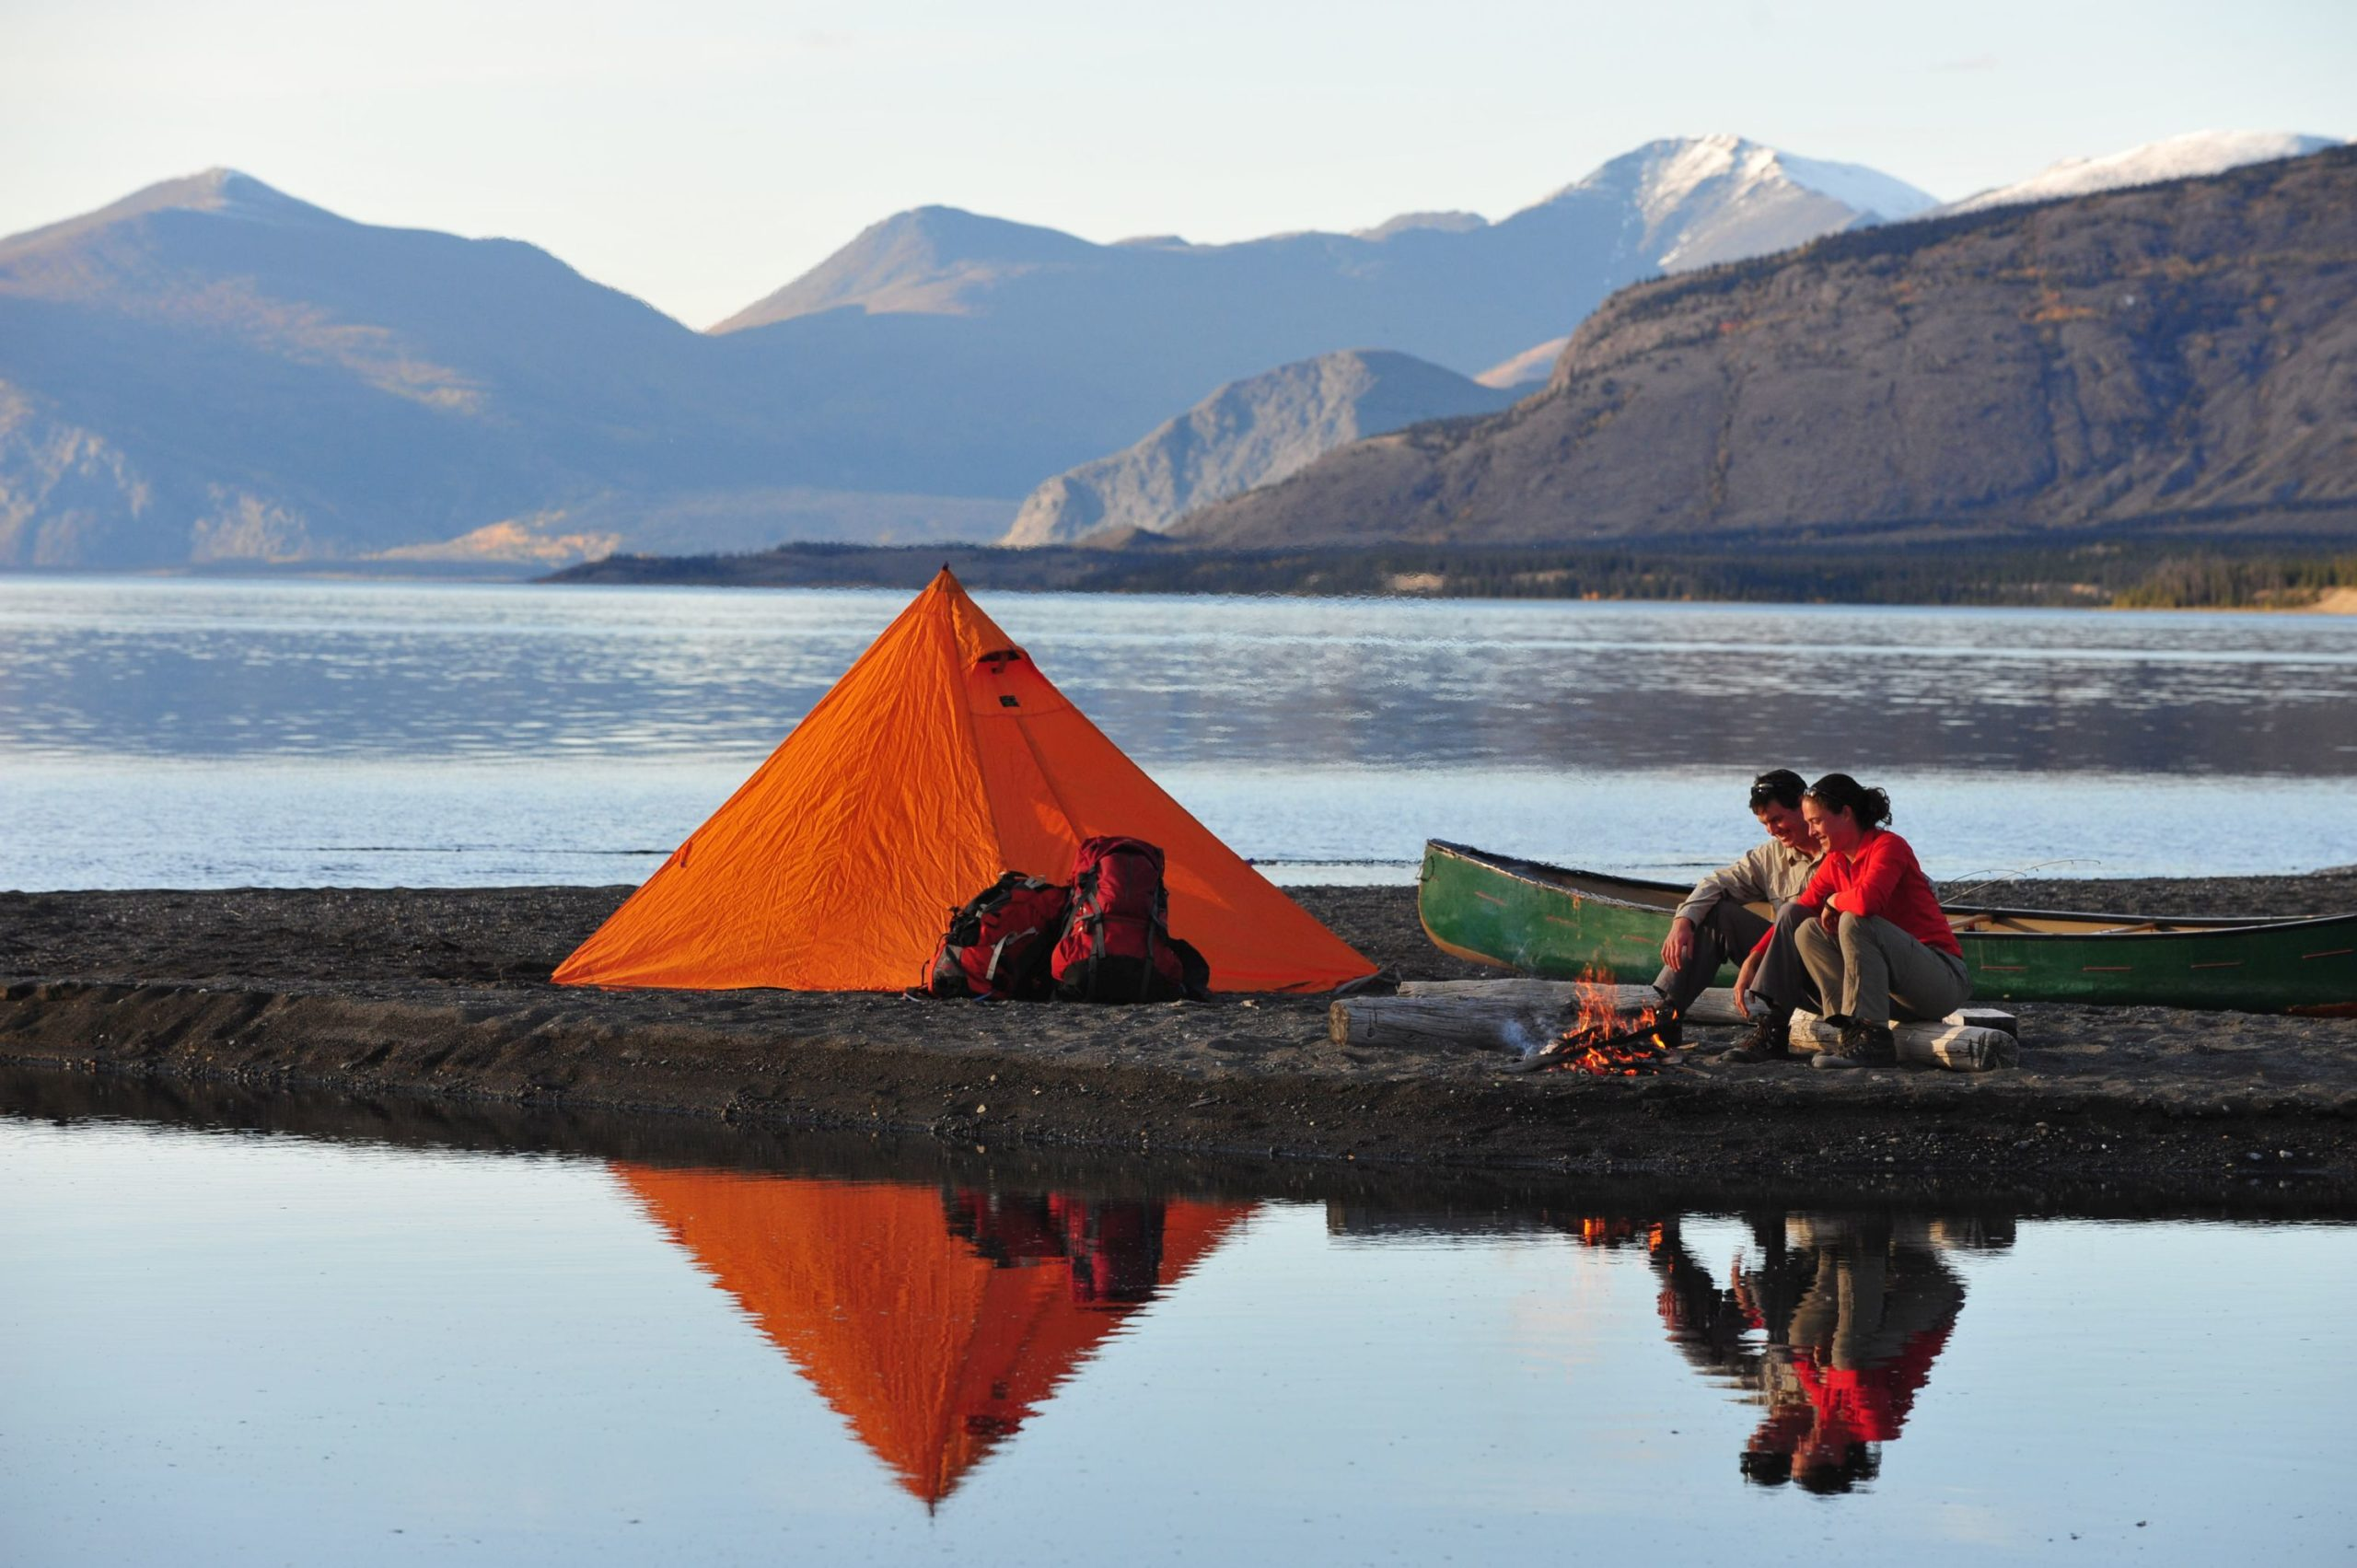 After spending a year at home, in 2021 adventurers might want to head far away from home, above the Arctic Circle, and into the spectacular Yukon wilderness.